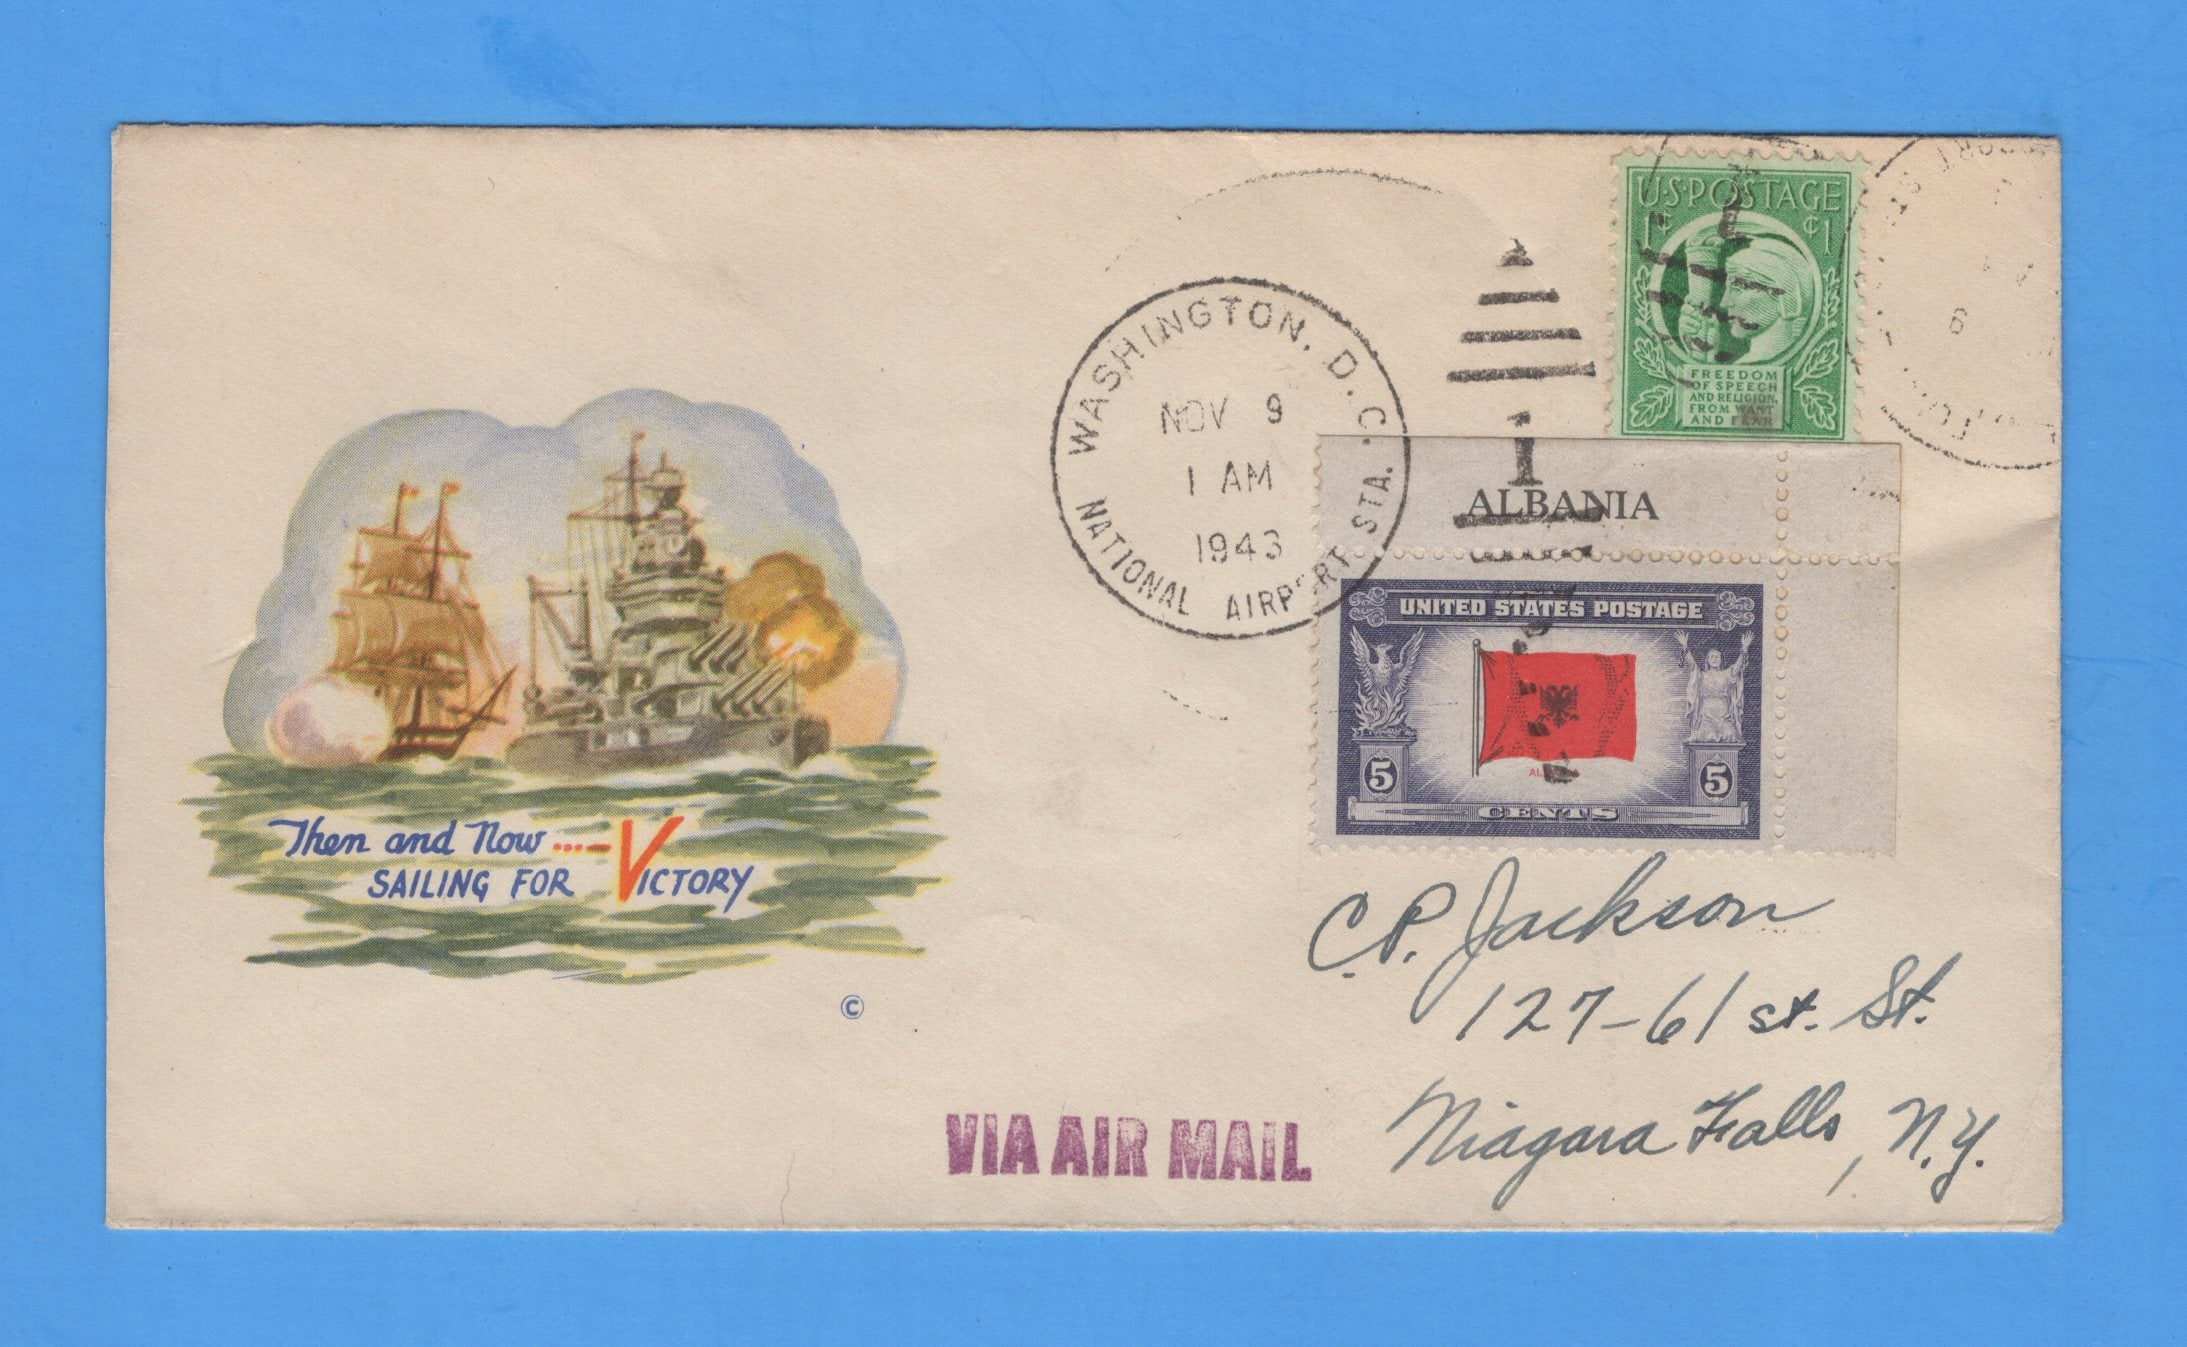 Scott 918 Overrun Nations Albania Sailing for Victory FDC on Minkus Patriotic